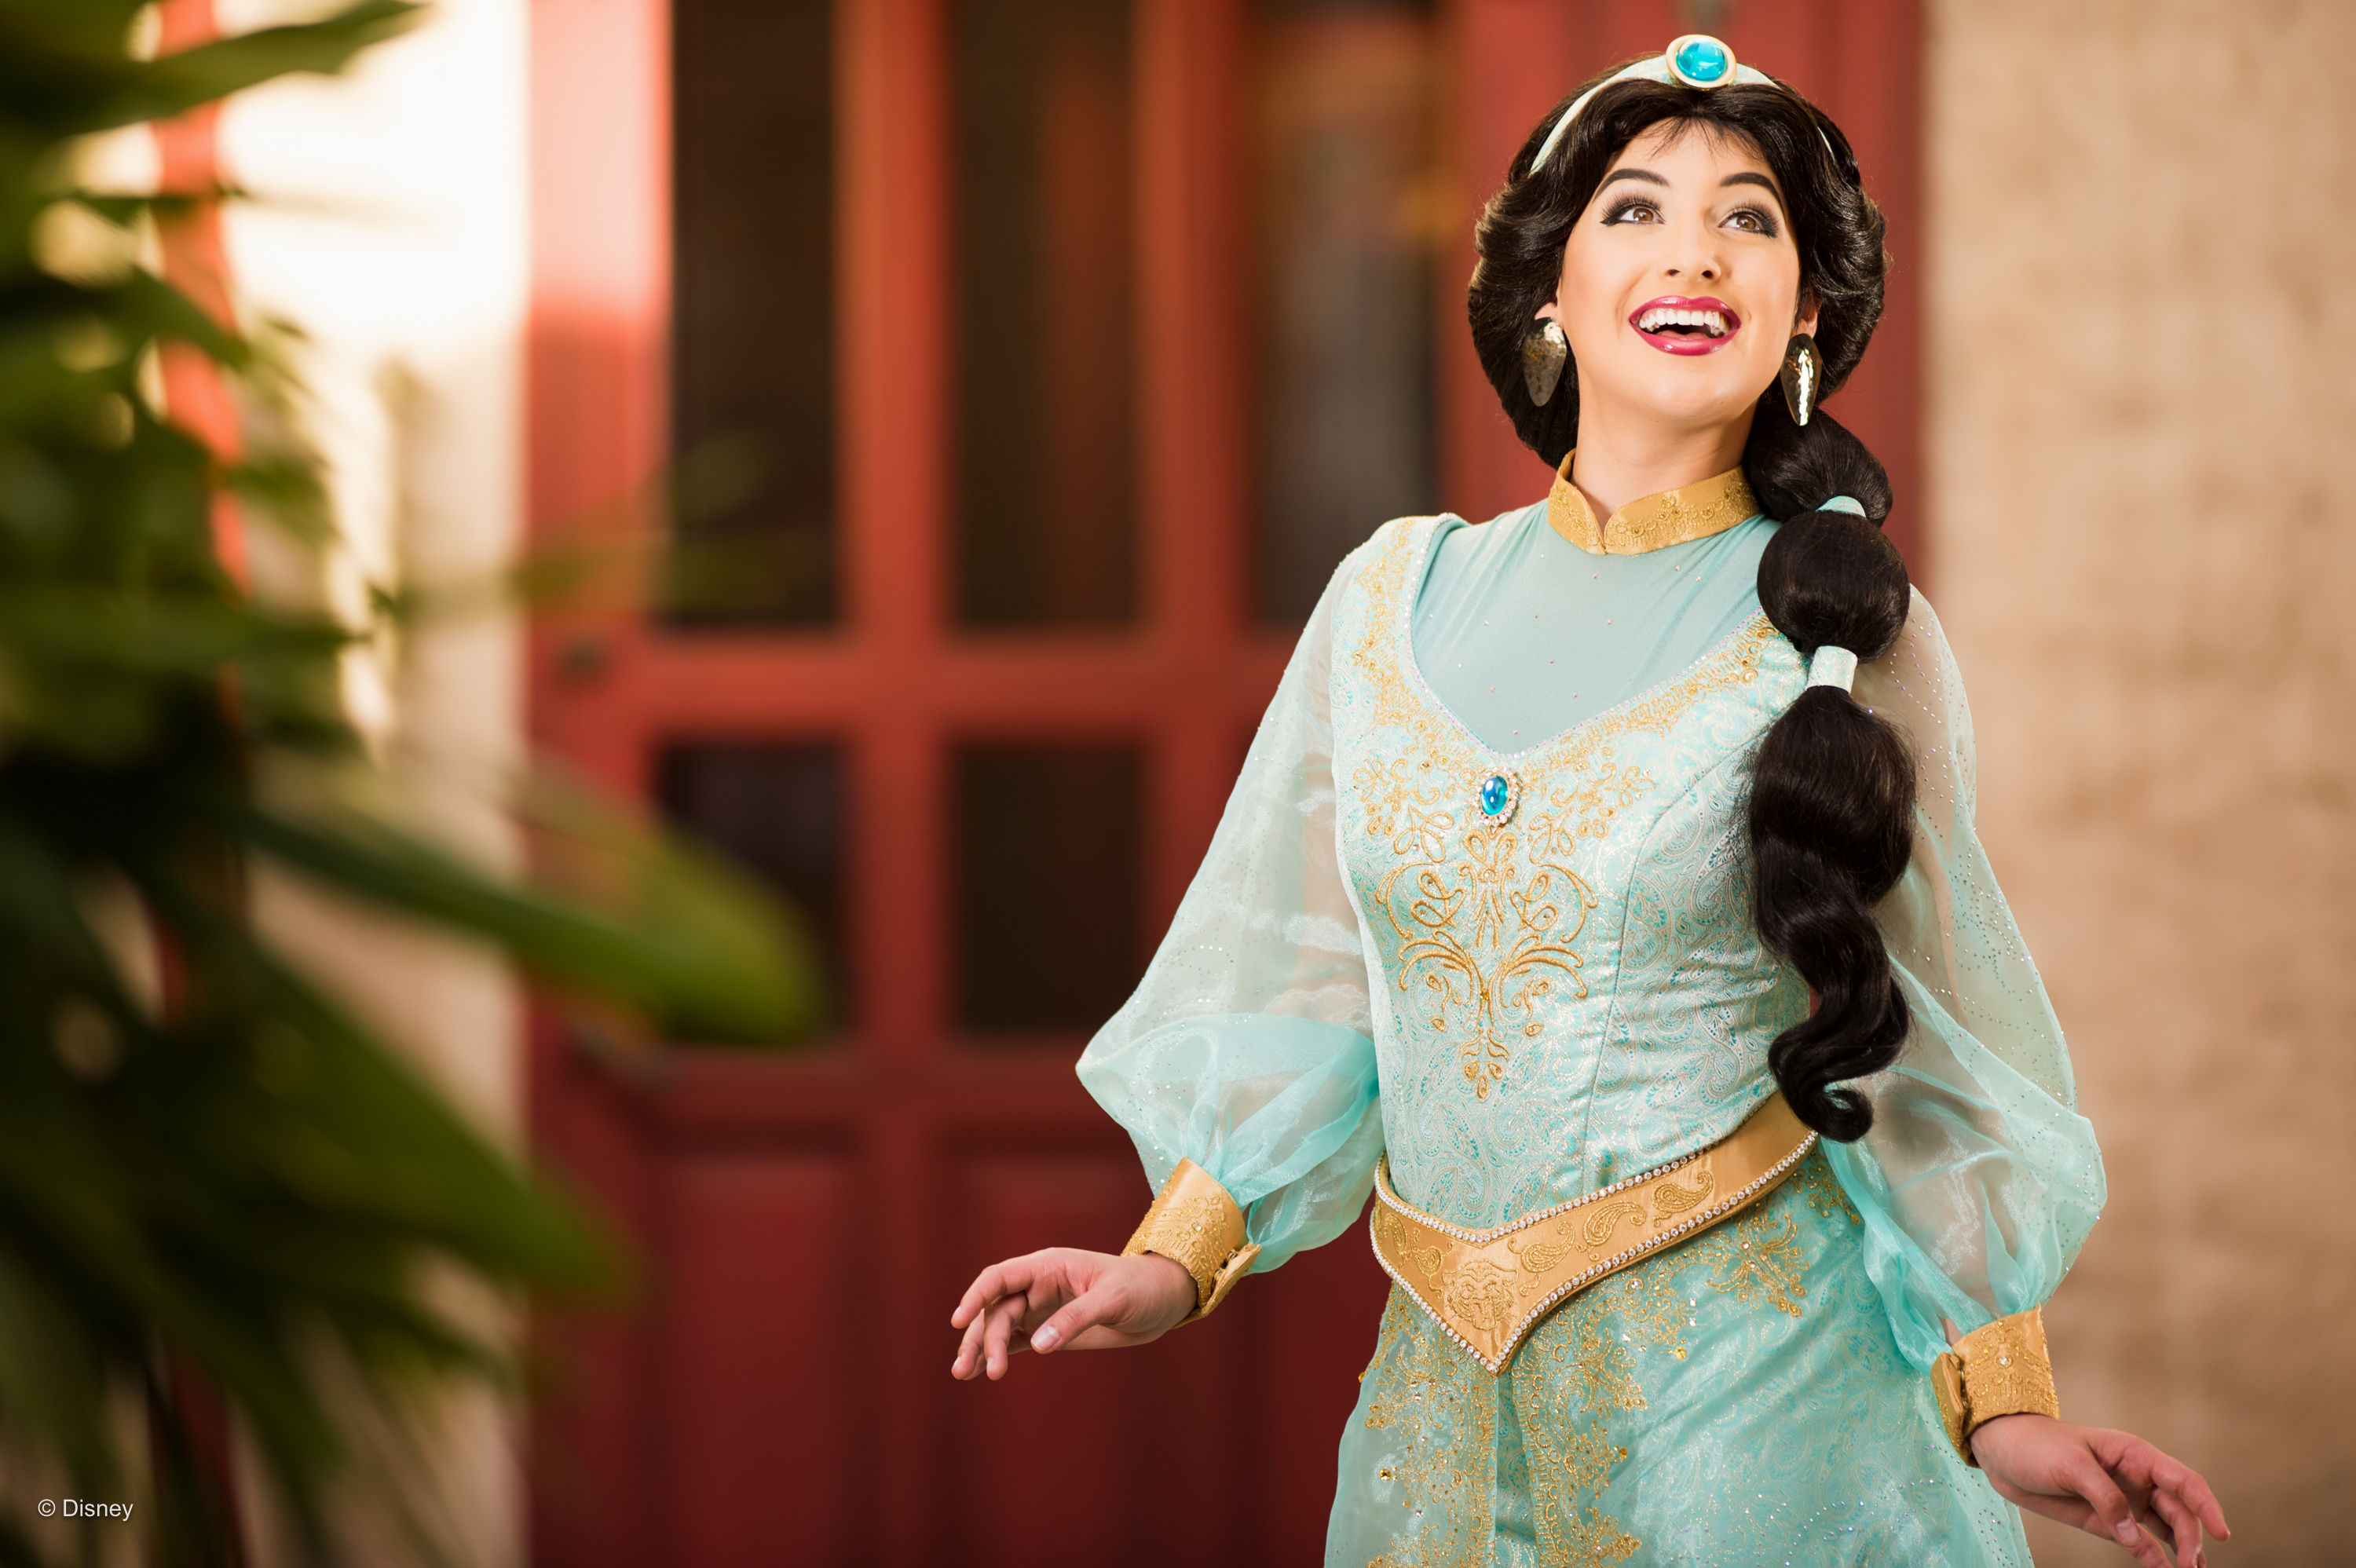 Where to Meet all the Walt Disney World Princesses, a guide featured by top US Disney blogger, Marcie and the Mouse: Families can meet Princess Jasmine at Epcot at Walt Disney World